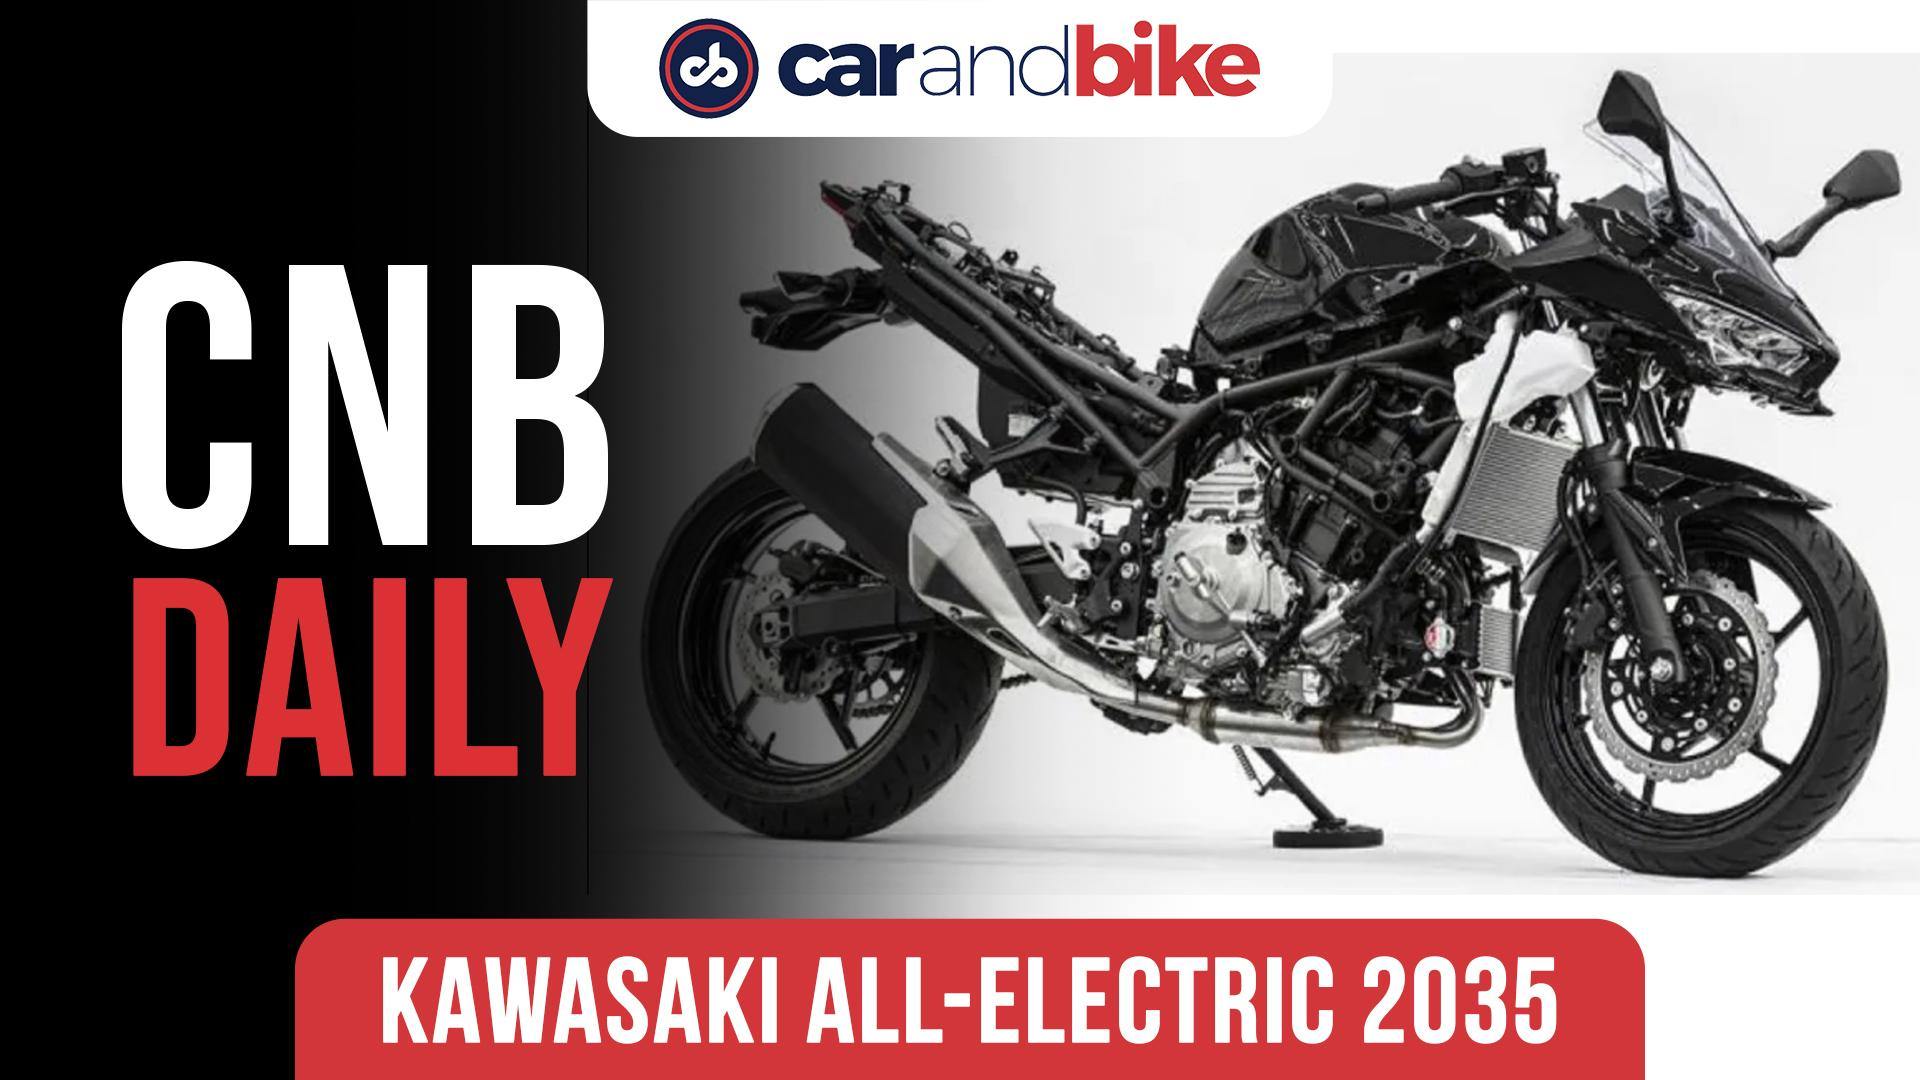 Kawasaki to go all electric by 2035